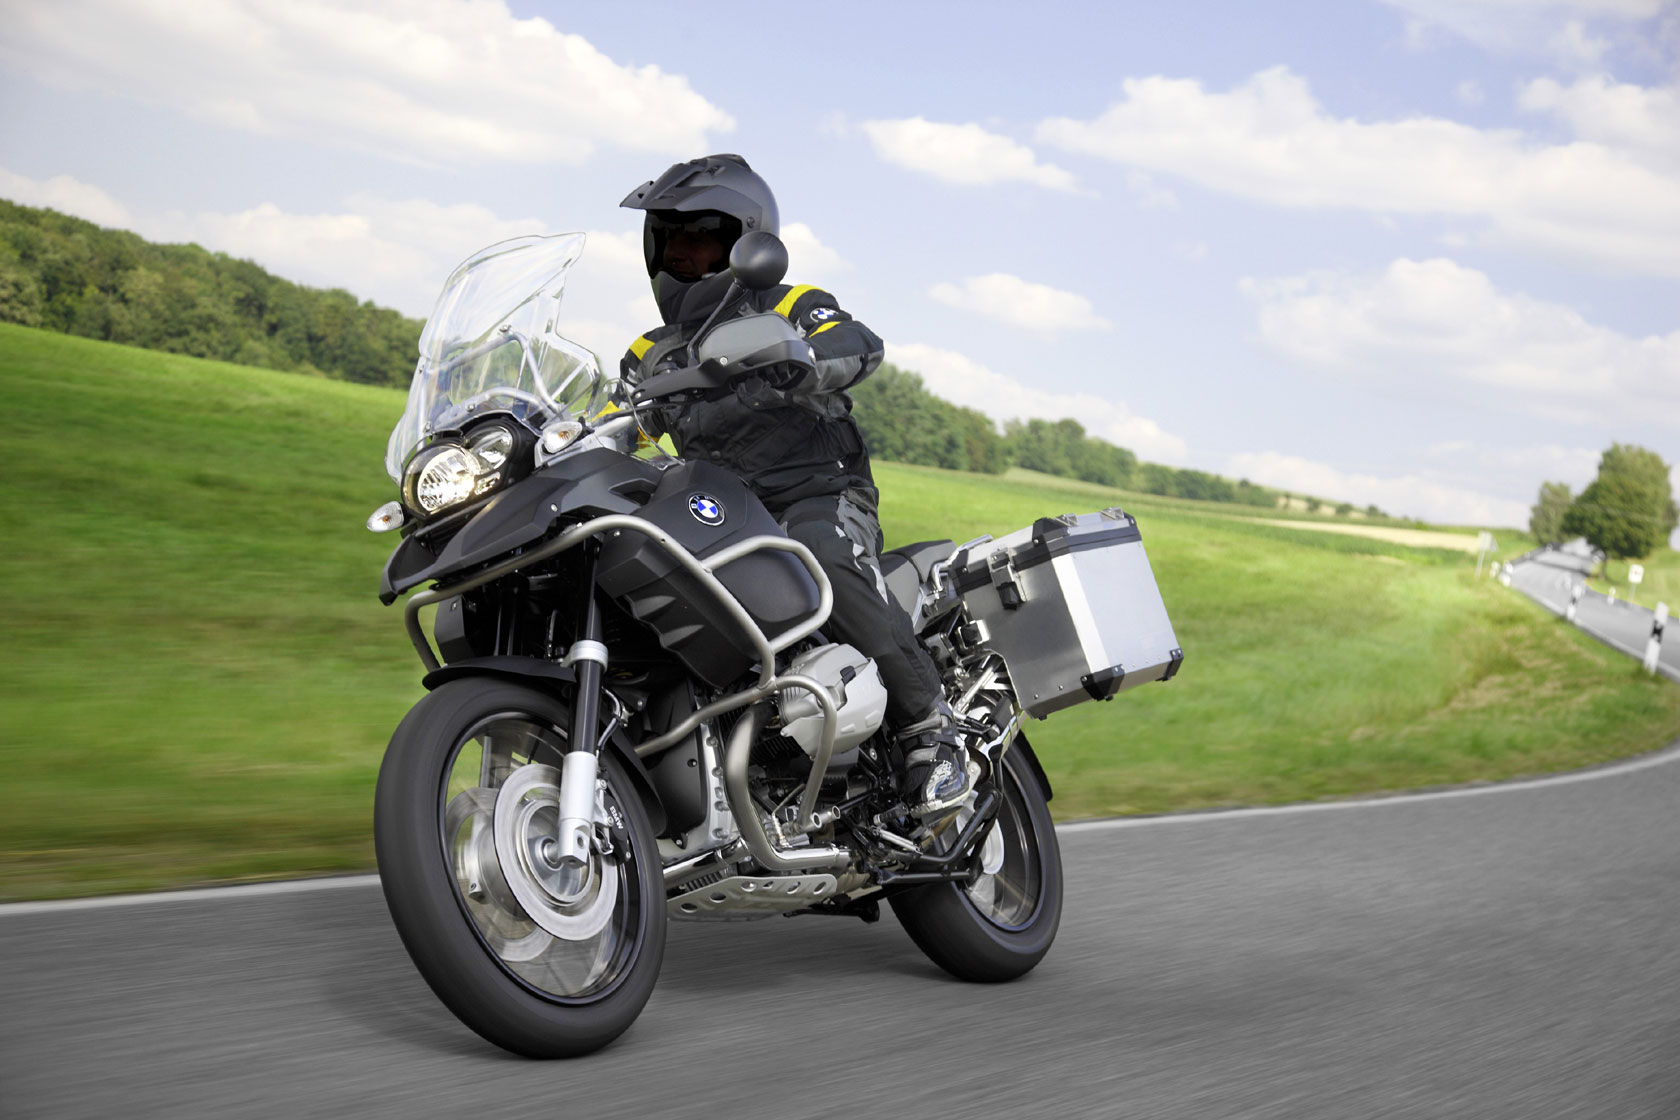 bmw r 1200 gs adventure specs 2009 2010 autoevolution. Black Bedroom Furniture Sets. Home Design Ideas